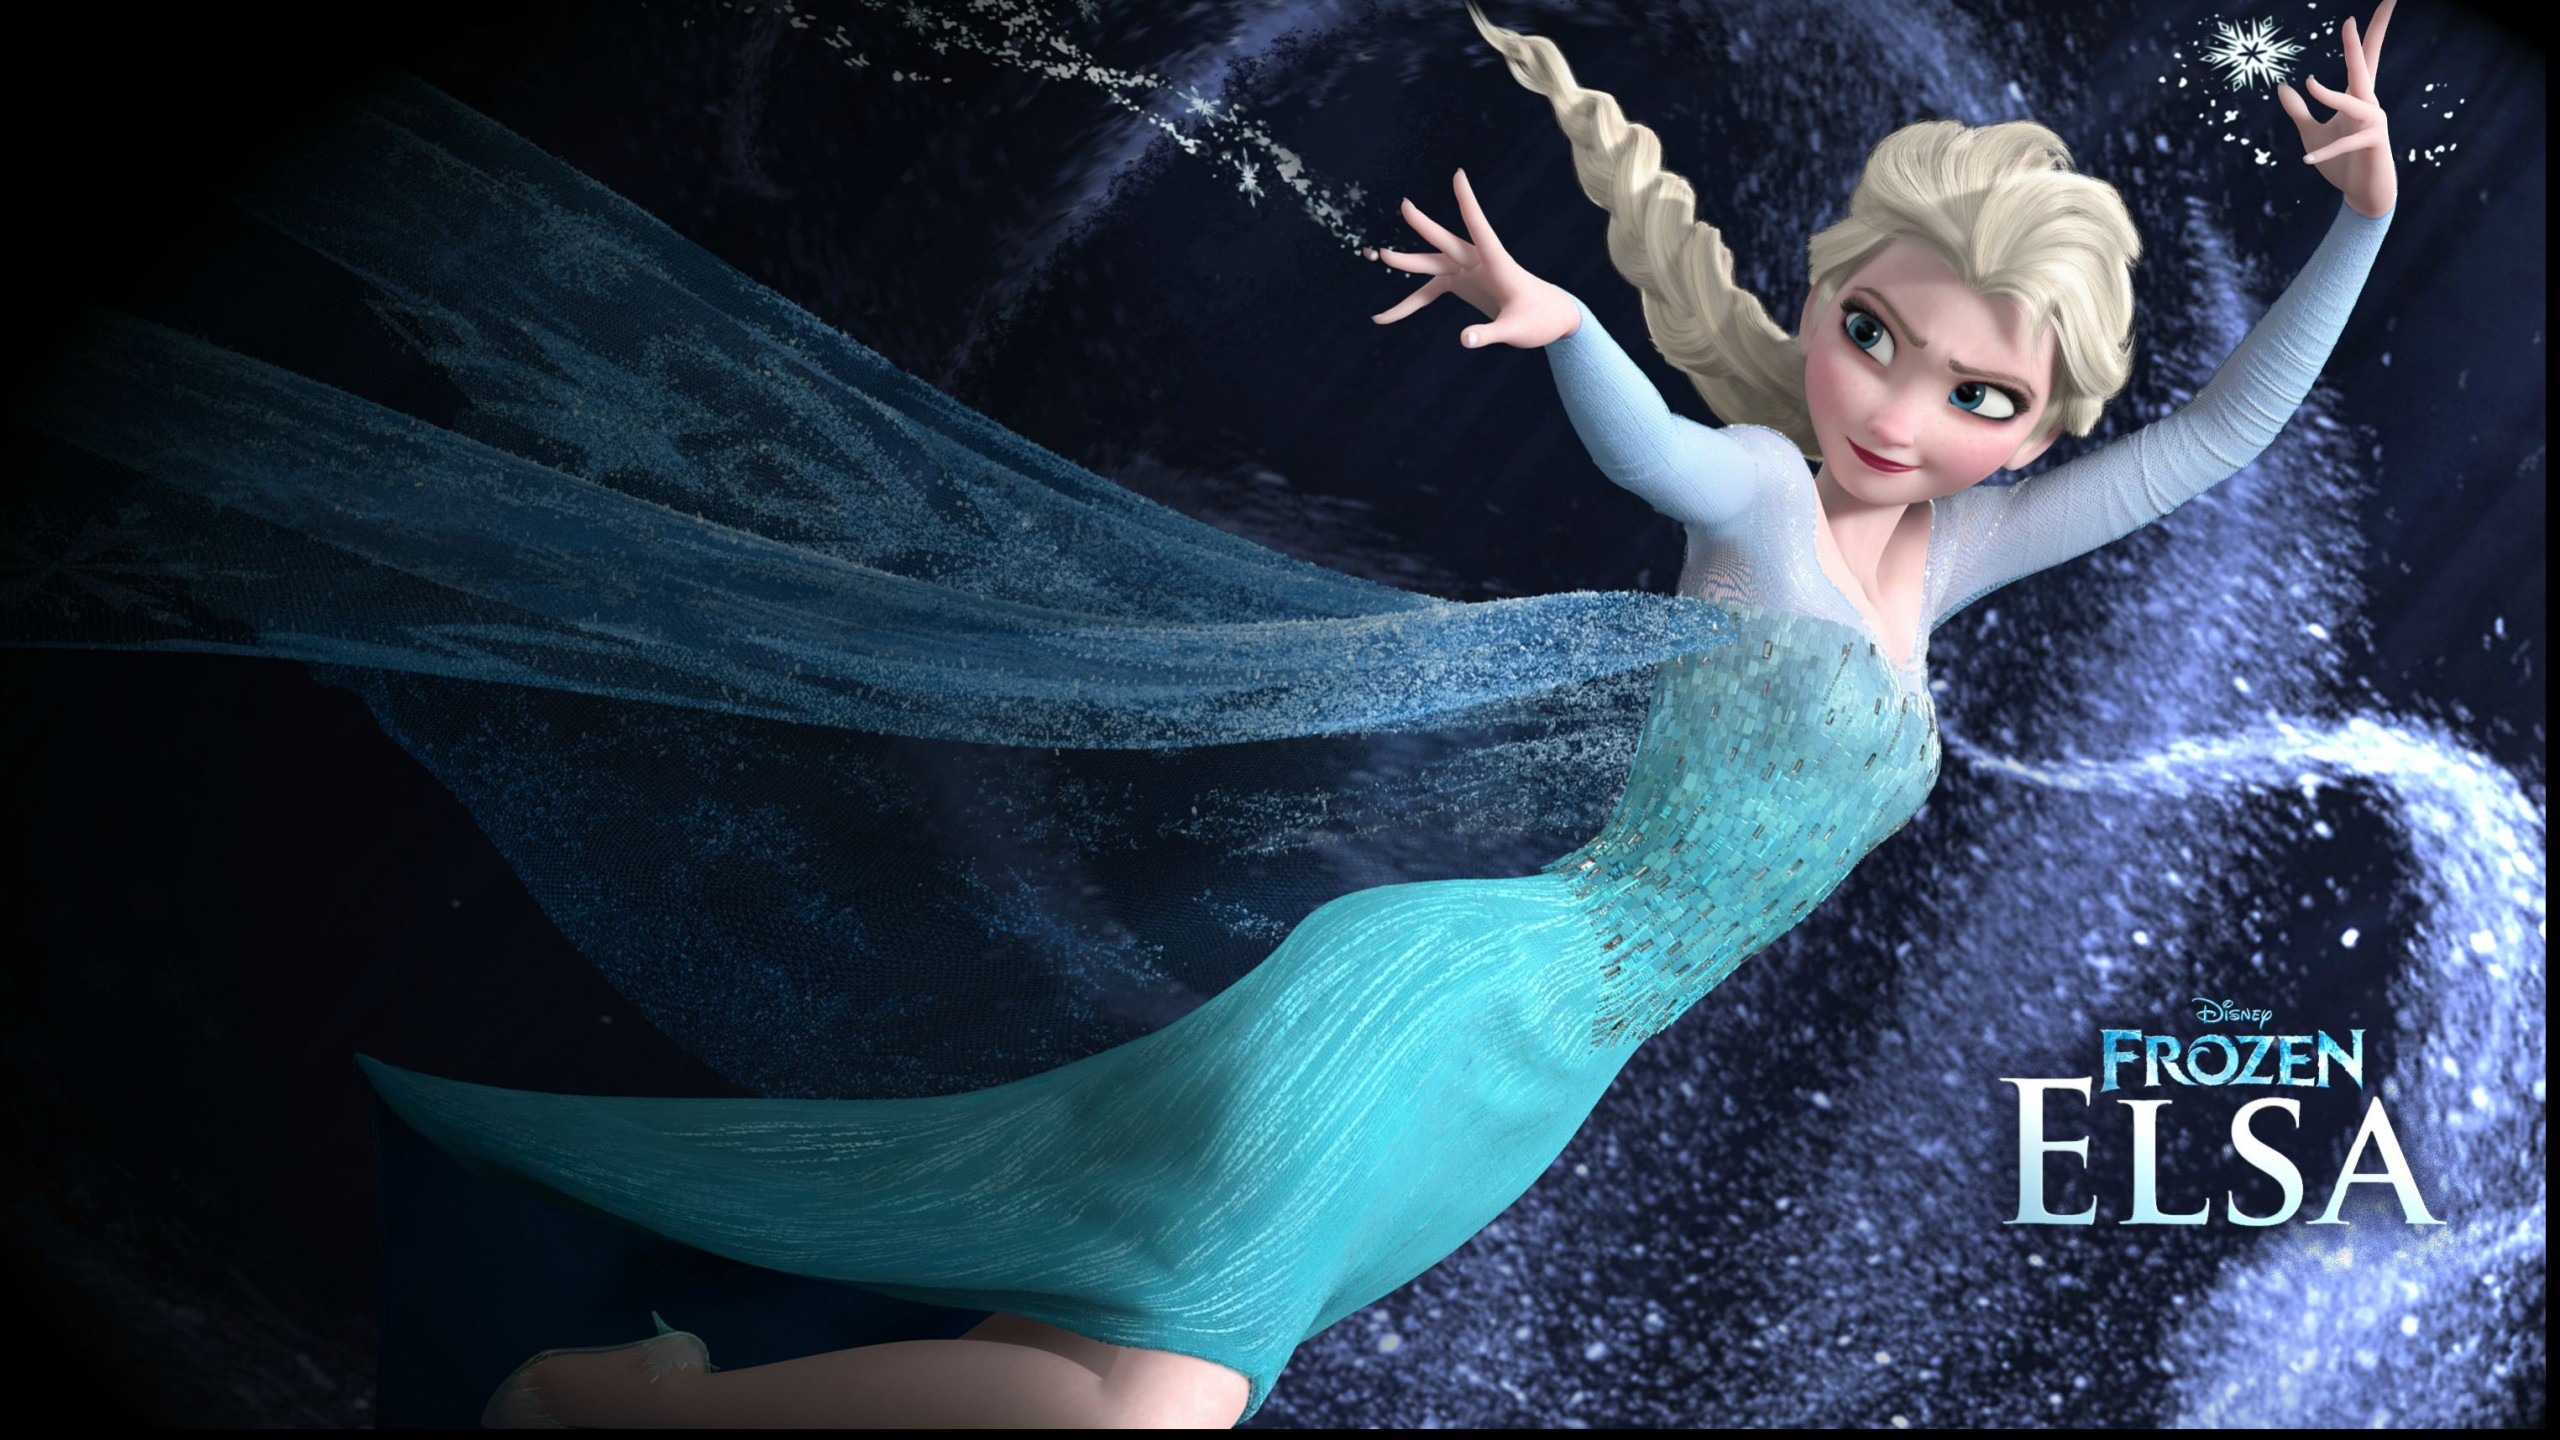 Download Queen Elsa From Disney Frozen Movie Wallpaper Image id 2585 2560x1440